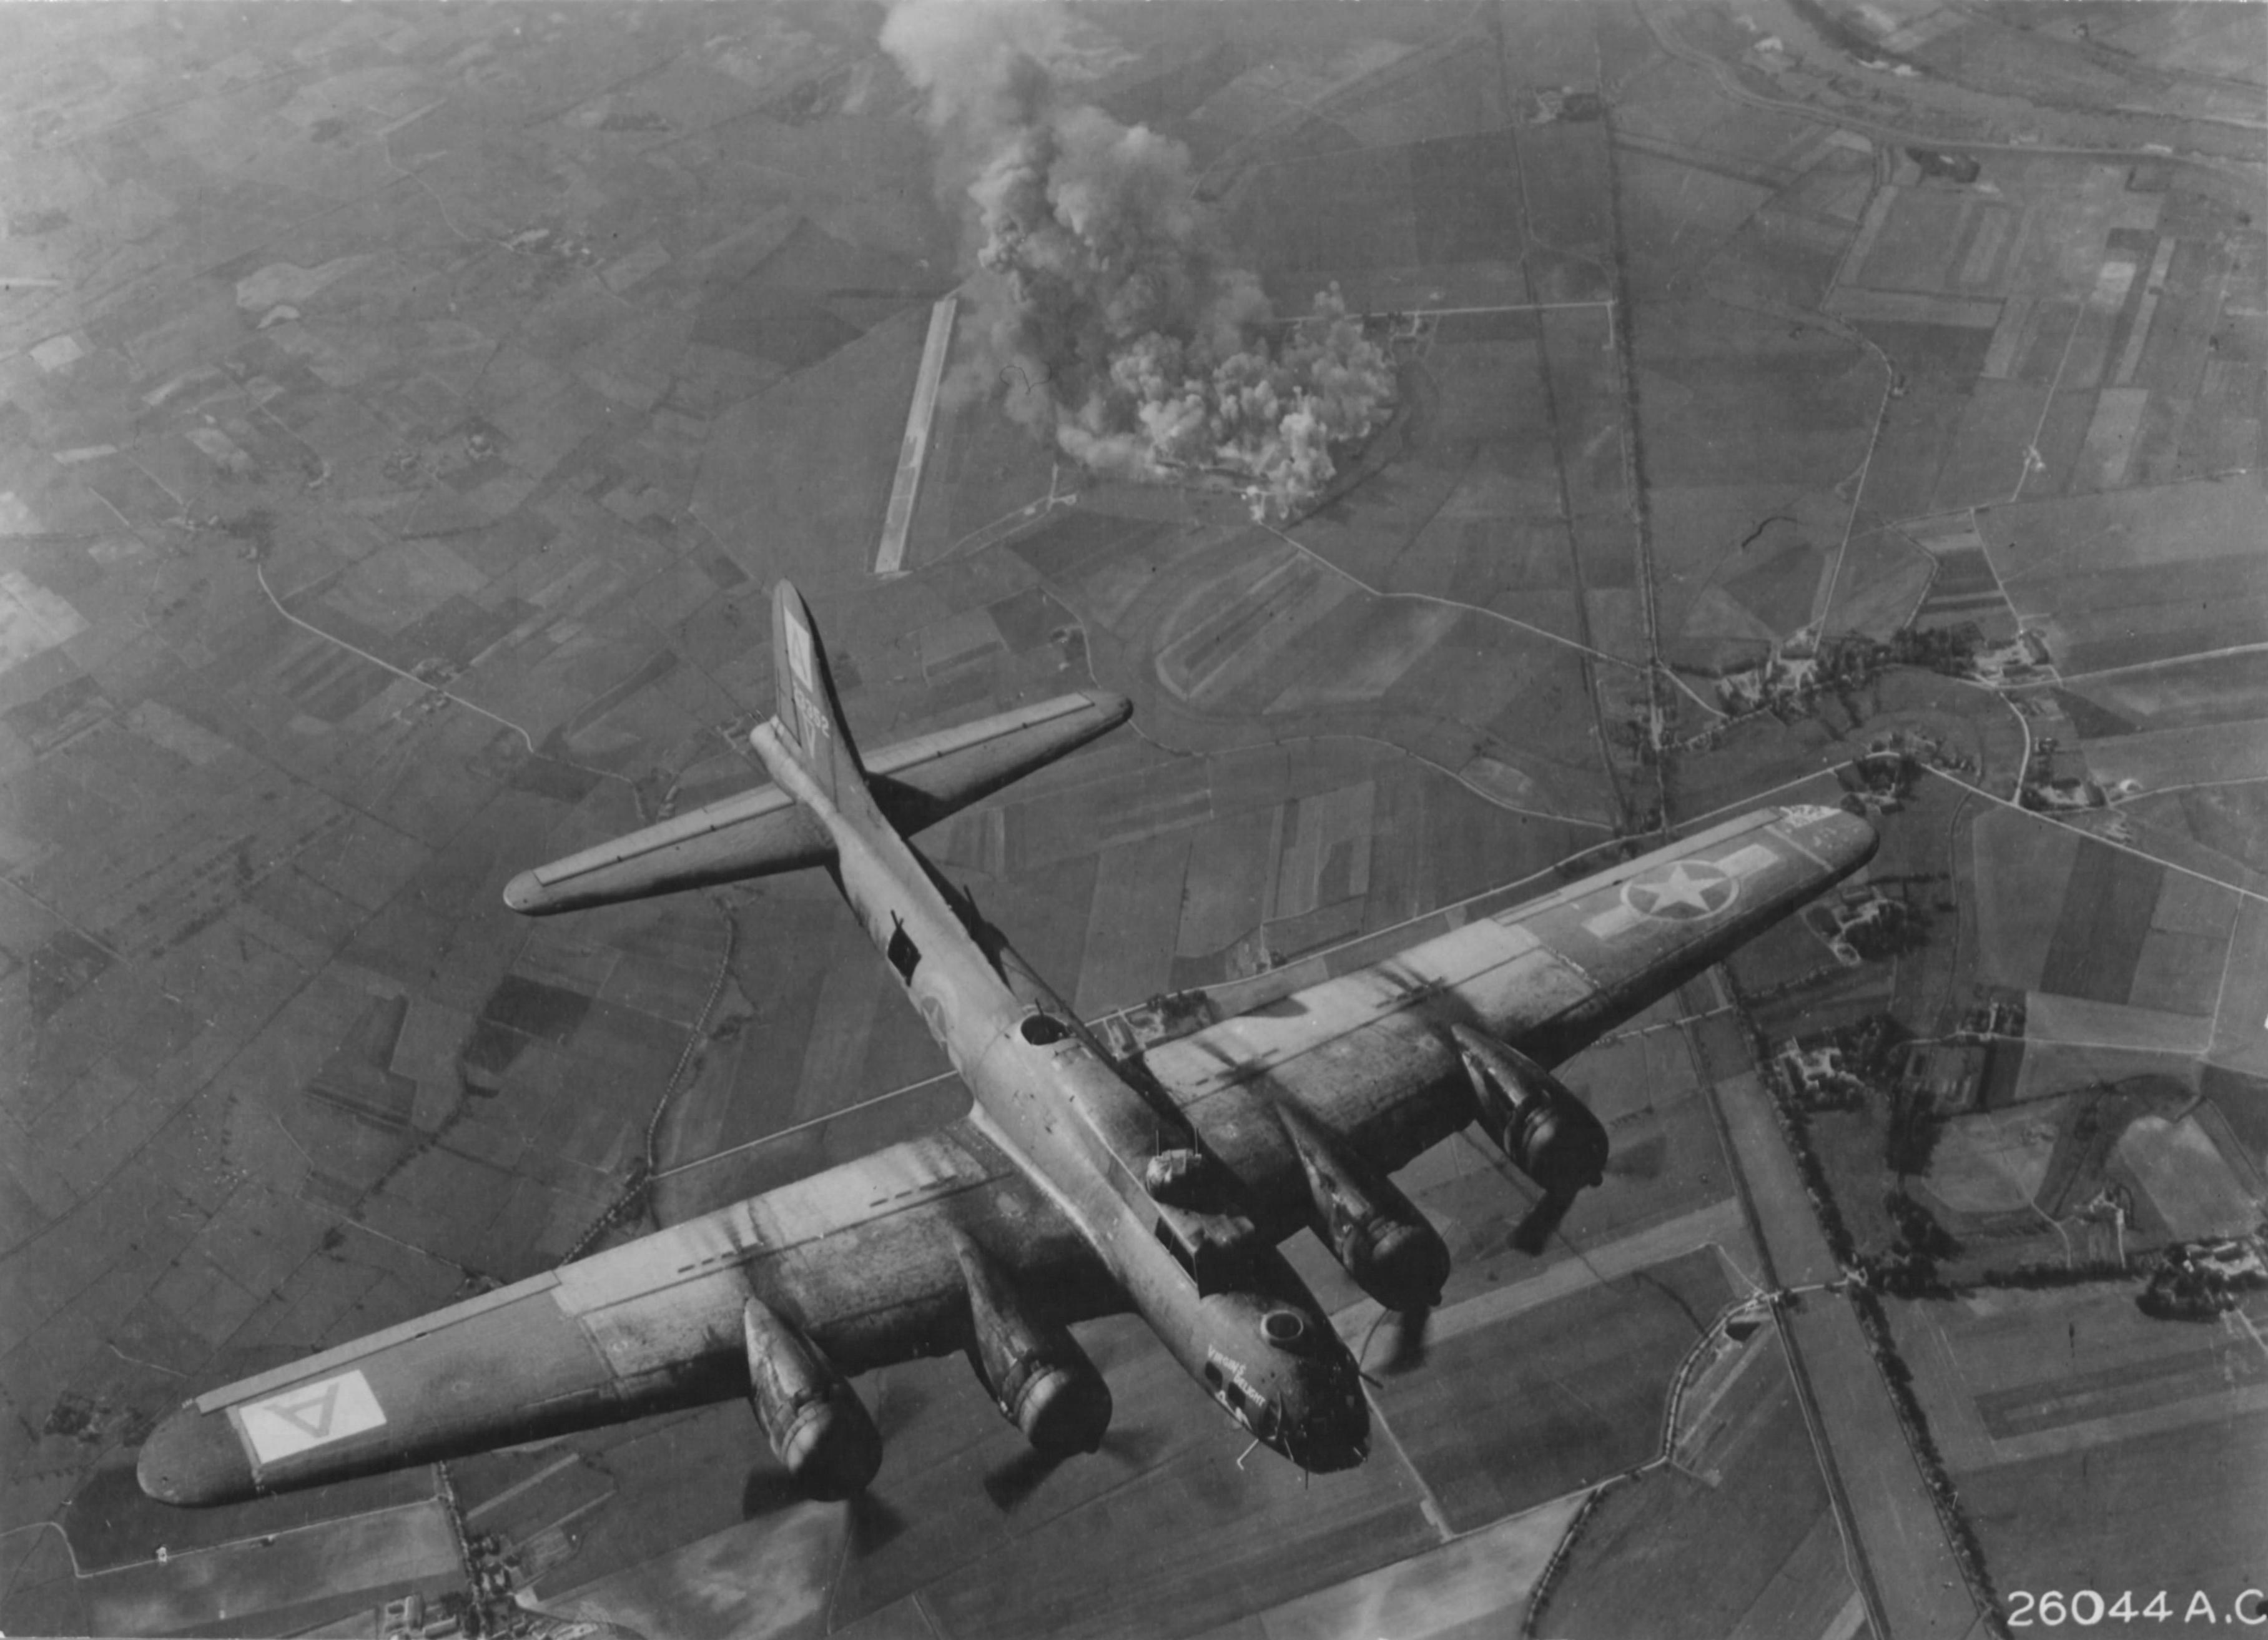 B-17 Flying Fortress bomber of the US 94th Bombardment Group bombing Focke-Wulf aircraft factory, Marienburg, Germany, 9 October 1943 (US National Archives)